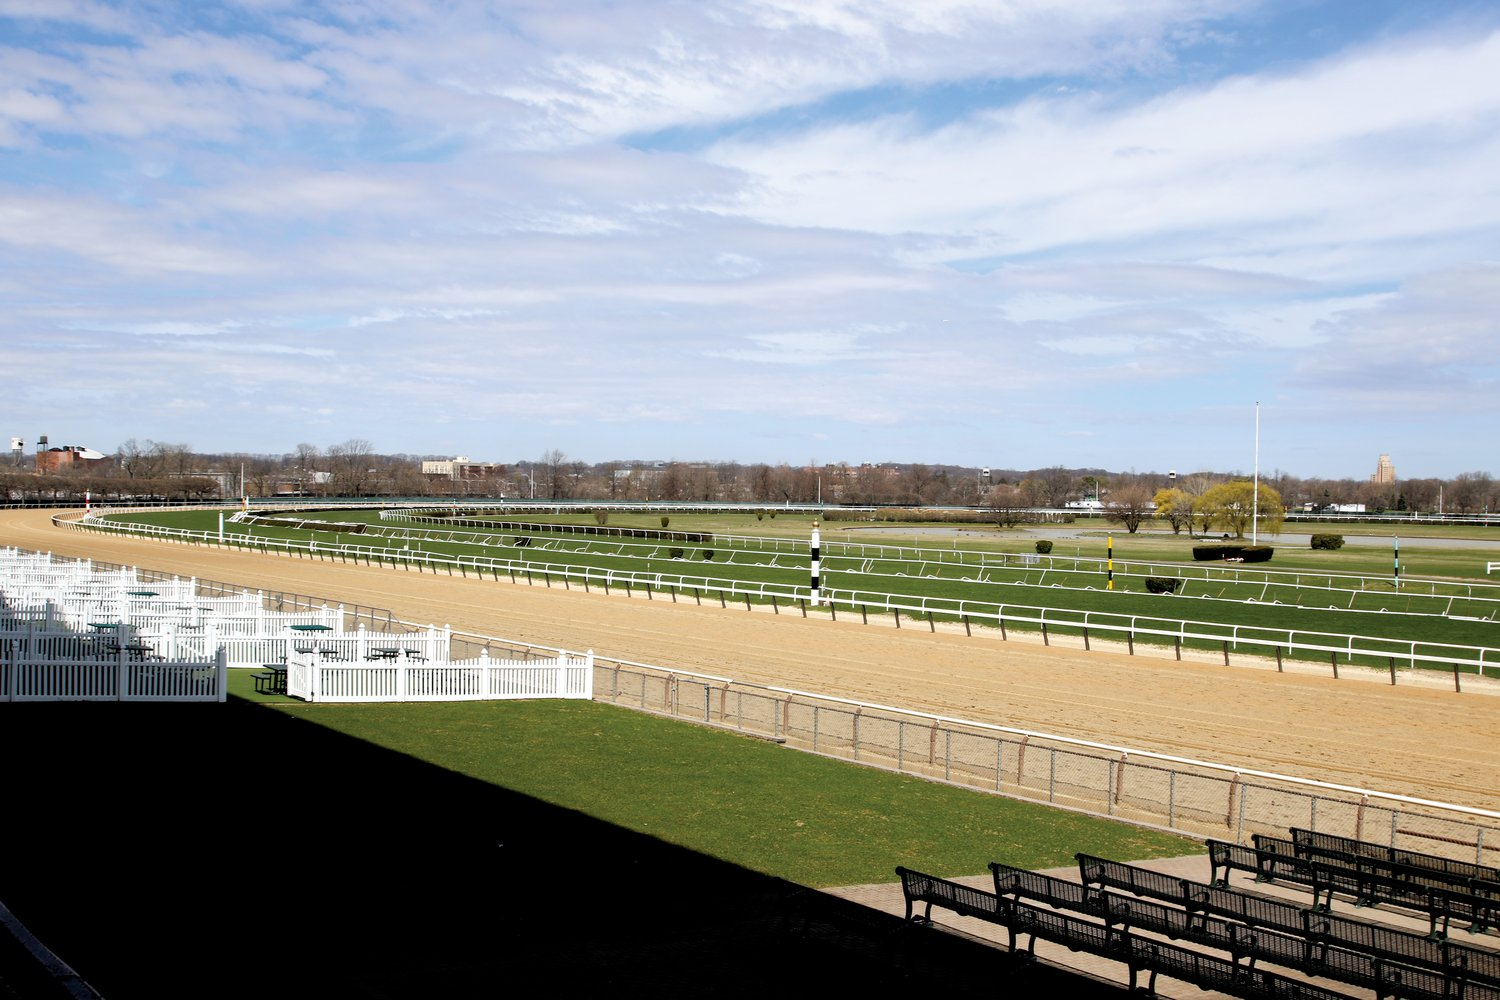 New York Racing Association officials are considering winterizing the track at Belmont Park, and reducing the size of the grandstand so that it no longer casts a shadow over the track.